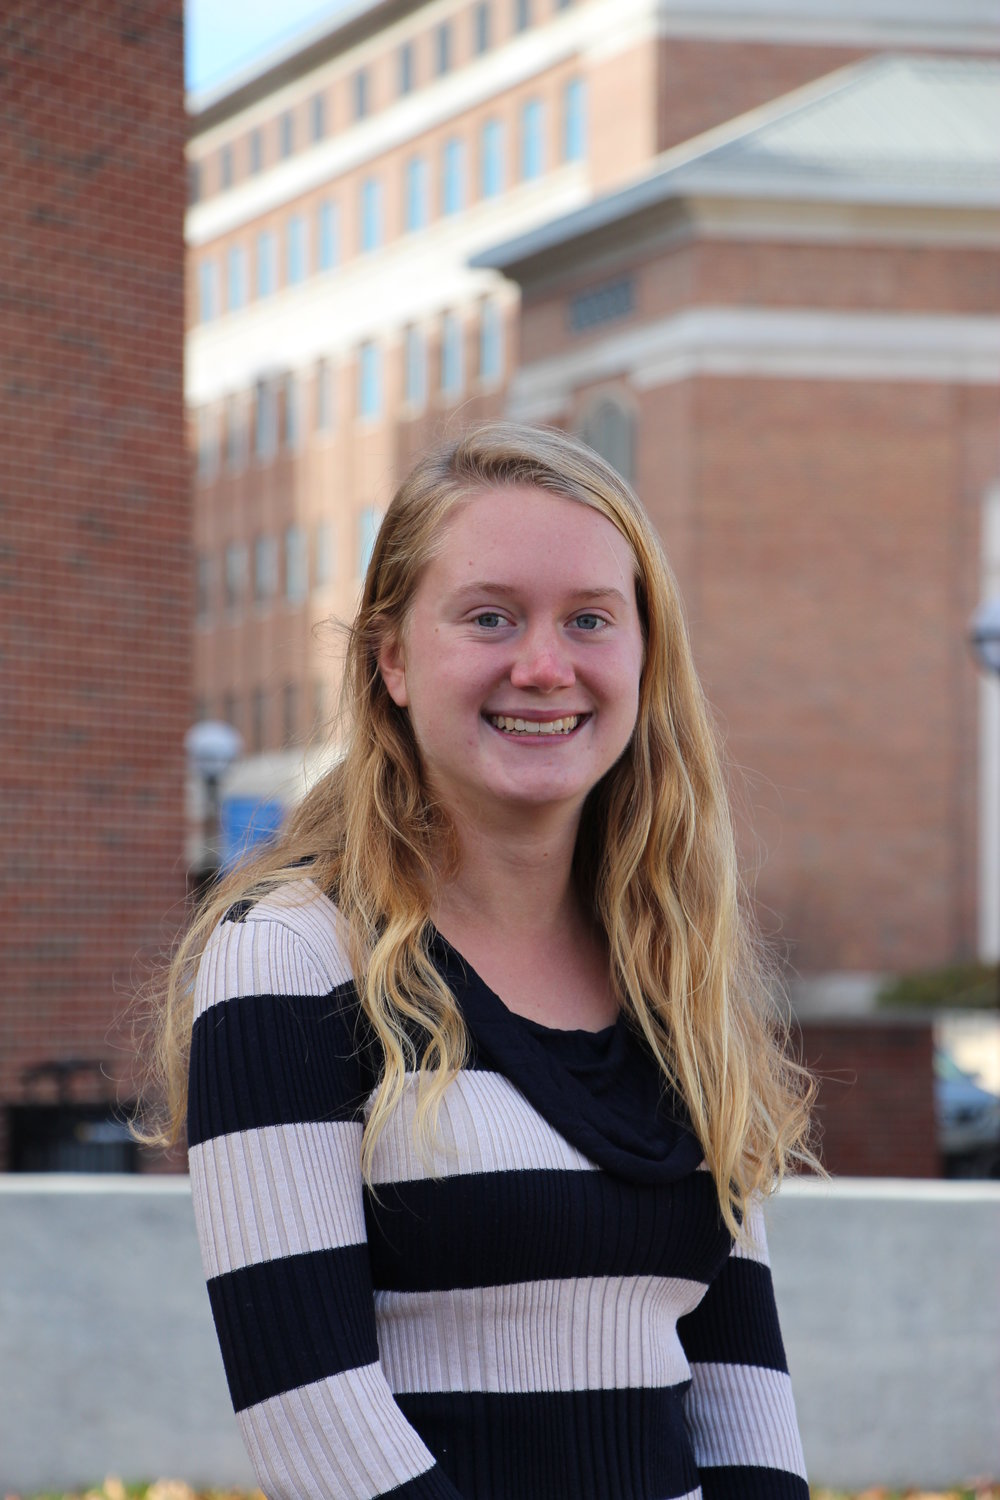 Zoe Gerstle Undergraduate Student Zoe is a sophomore in the College of Literature, Science, and the Arts at the University of Michigan. She joined the Veatch Lab in June, 2016 and is currently exploring the effects of DTT and n-alcohols on critical temperatures in GPMVs (Giant Plasma Membrane Vesicles). Outside of the lab, Zoe enjoys backpacking, reading, and spending quality time with friends and family.